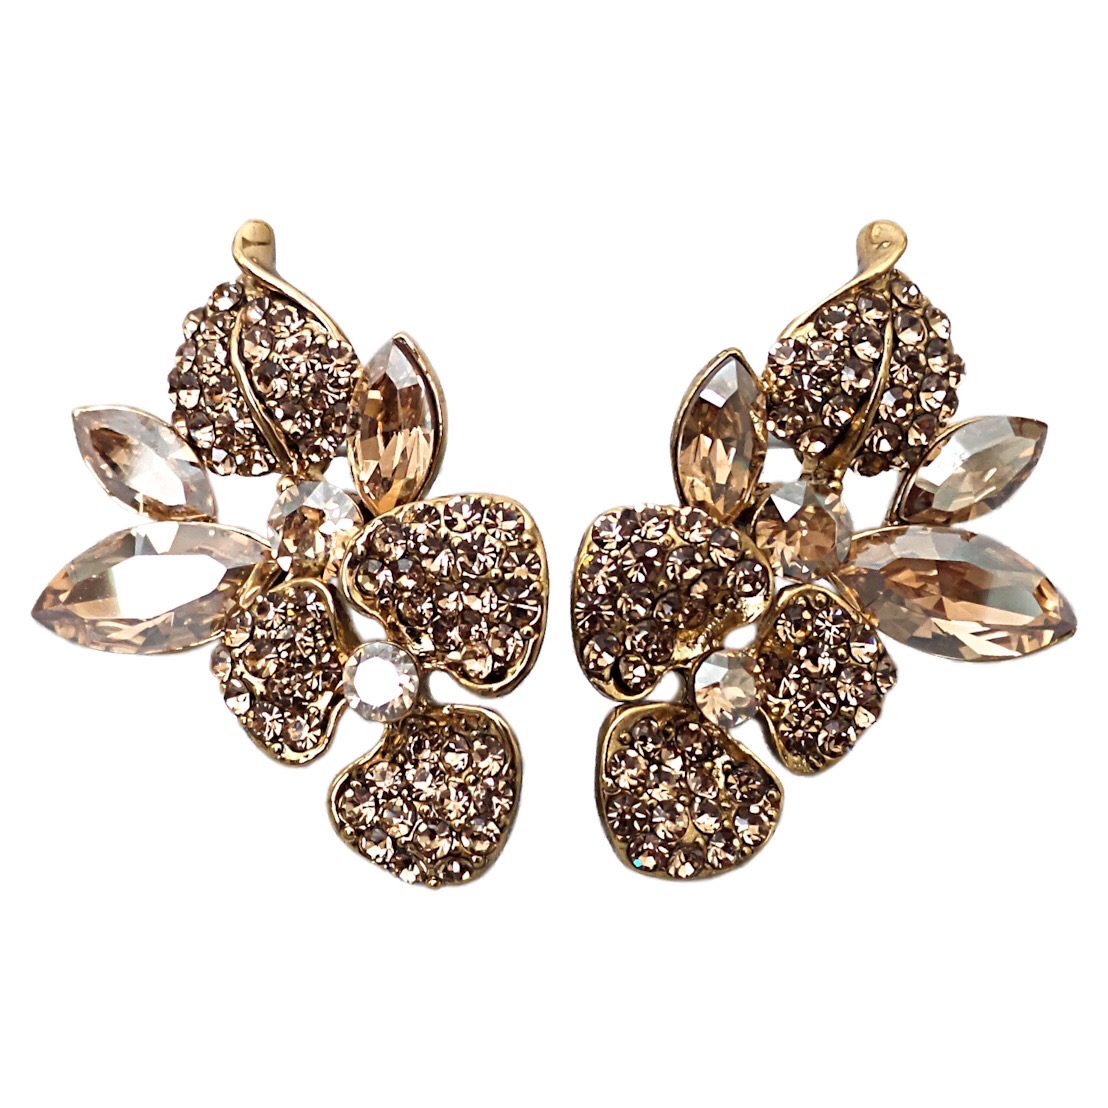 Earrings - DESERT ROSE/CGSG